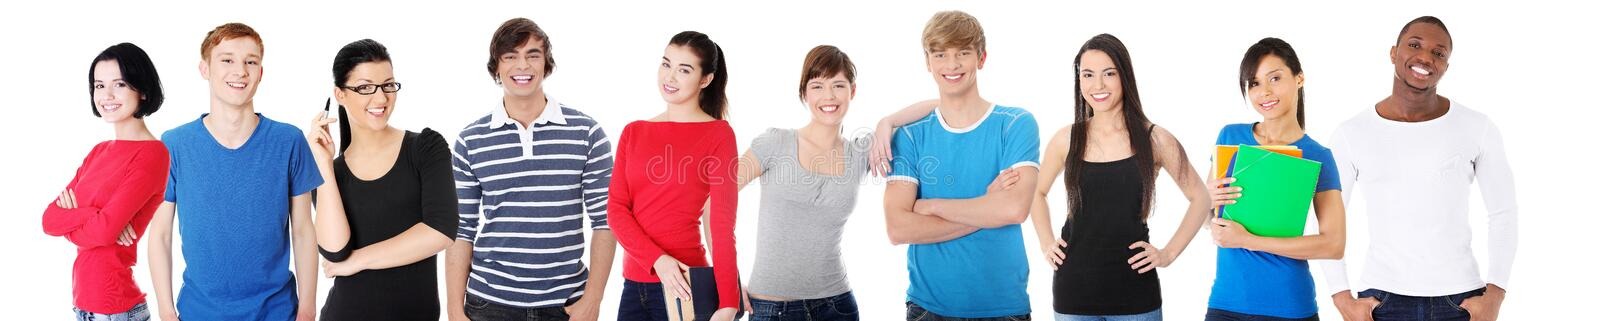 Large group of smiling friends staying together. royalty free stock photo